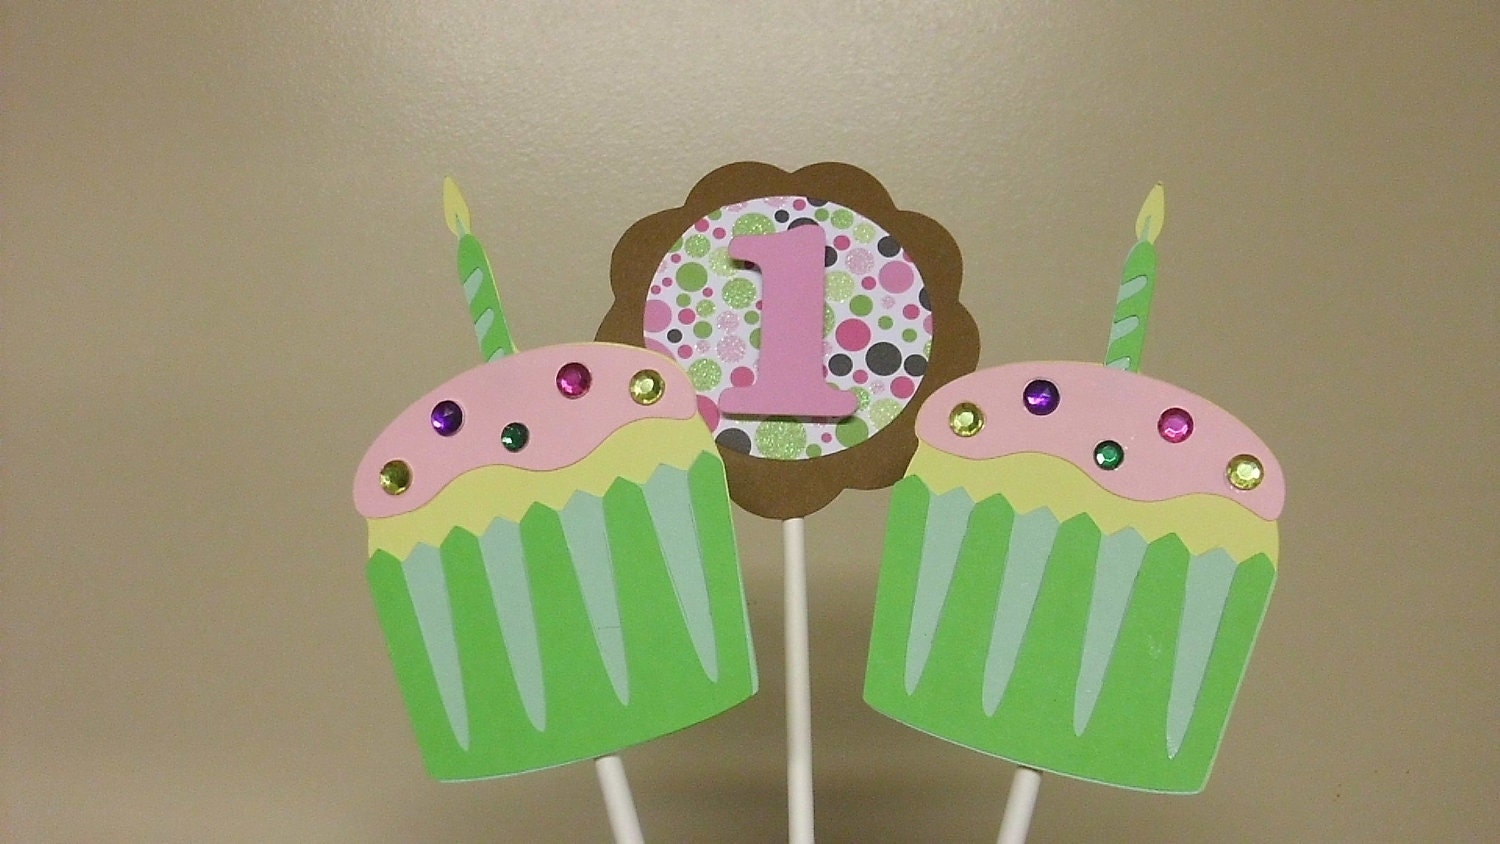 Cupcake Center Piece or Cake Topper (price is for 6 stakes total)